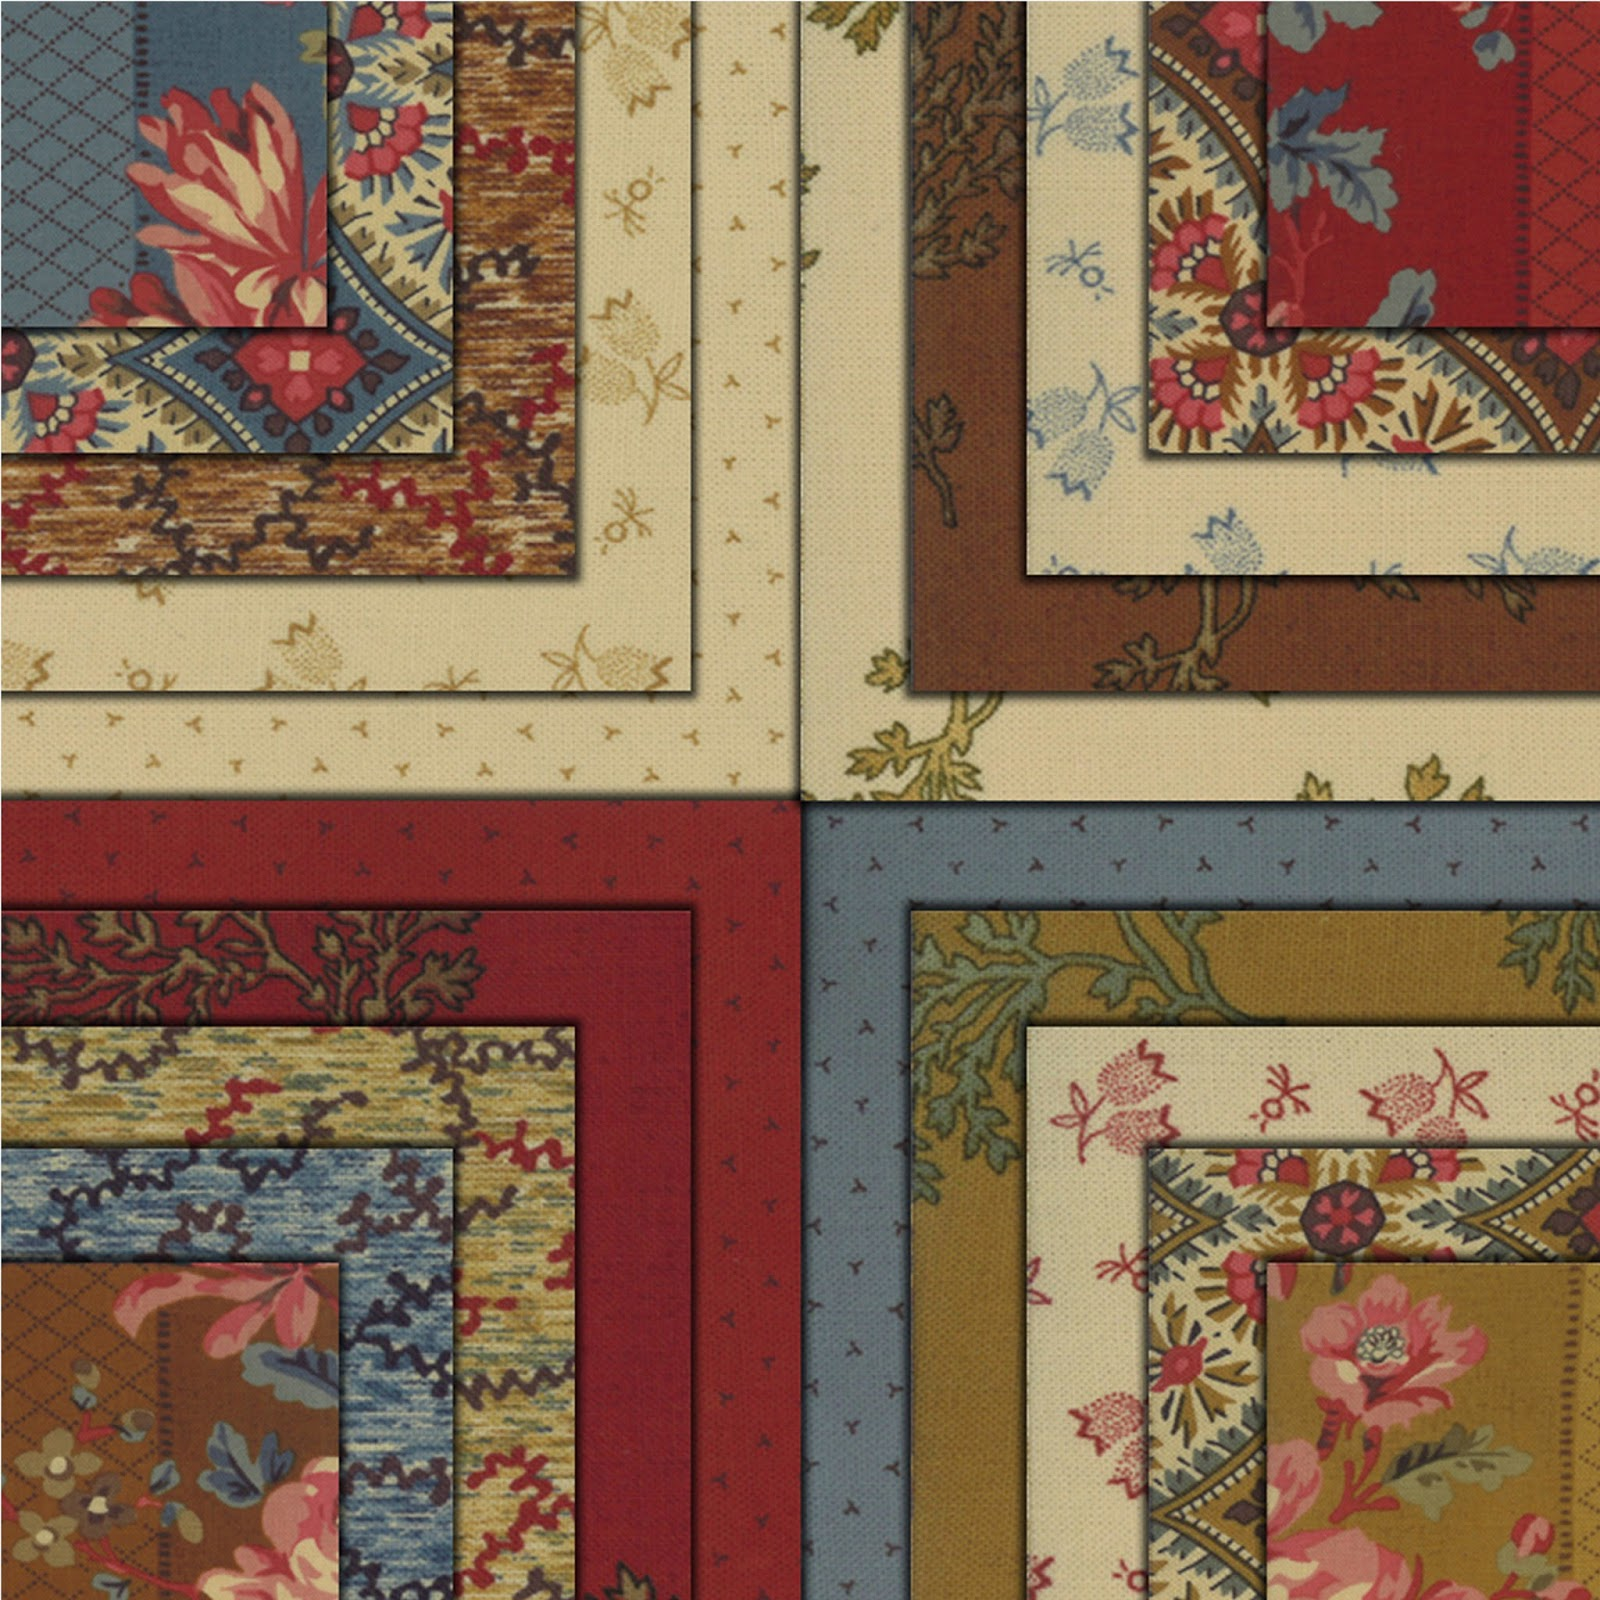 Moda HOPE CHEST Quilt Fabric by Edyta Sitar of Laundry Basket Quilts